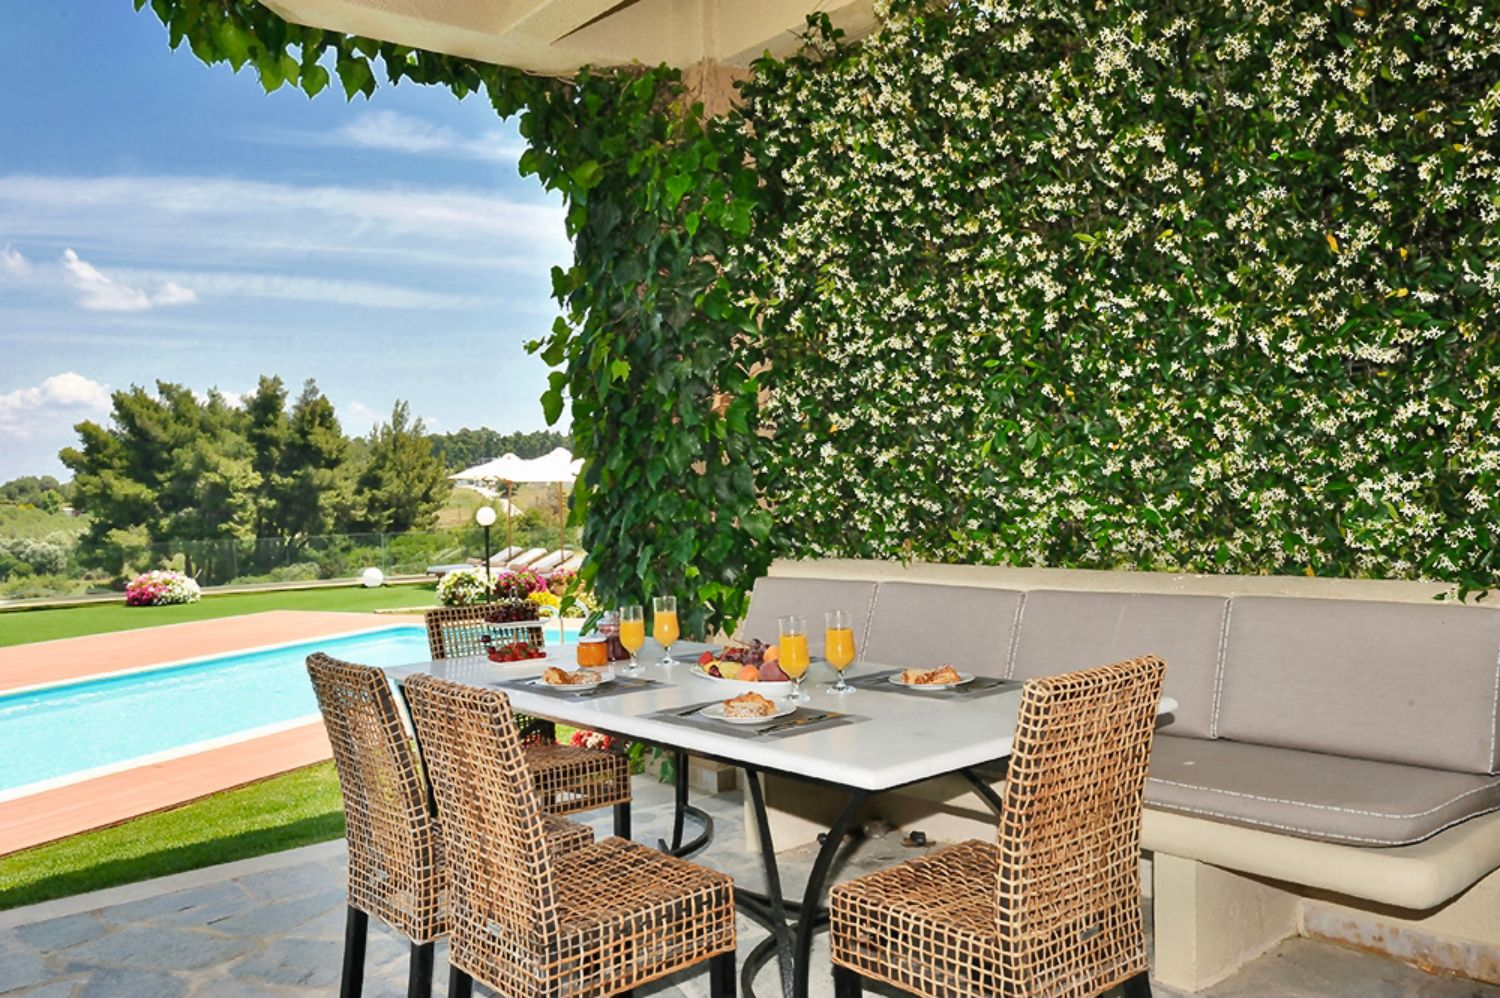 Outdoor dining area and pool view